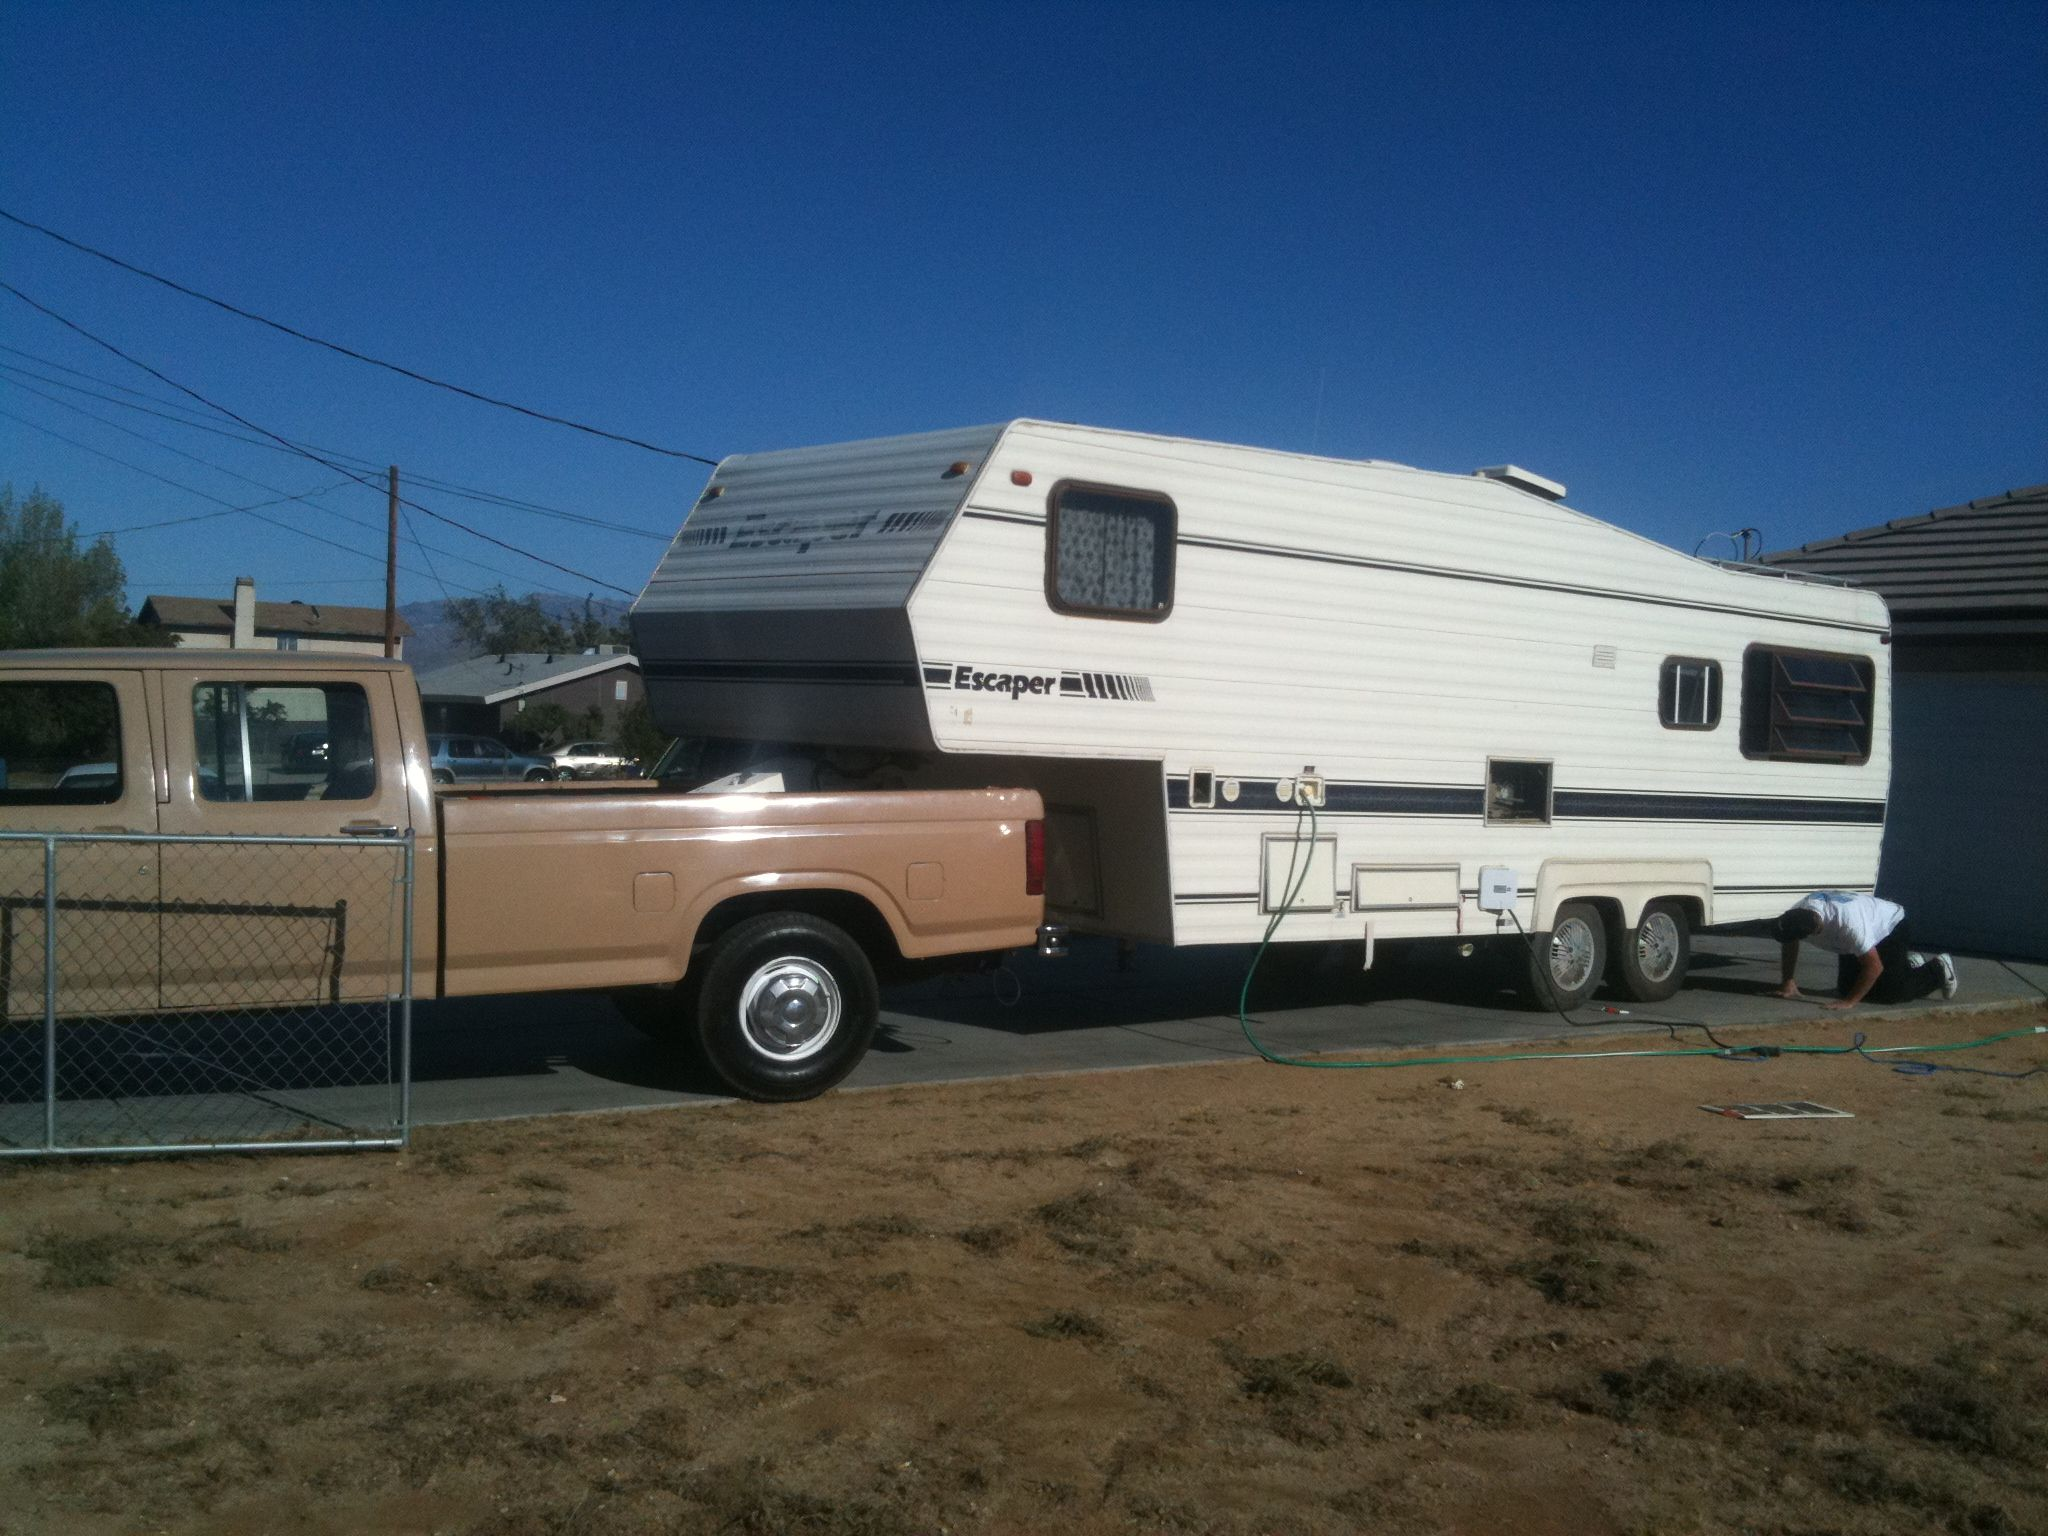 Jim Bailey's 1983 F-350 & 26' Escaper 5th Wheel Trailer  | Fifth